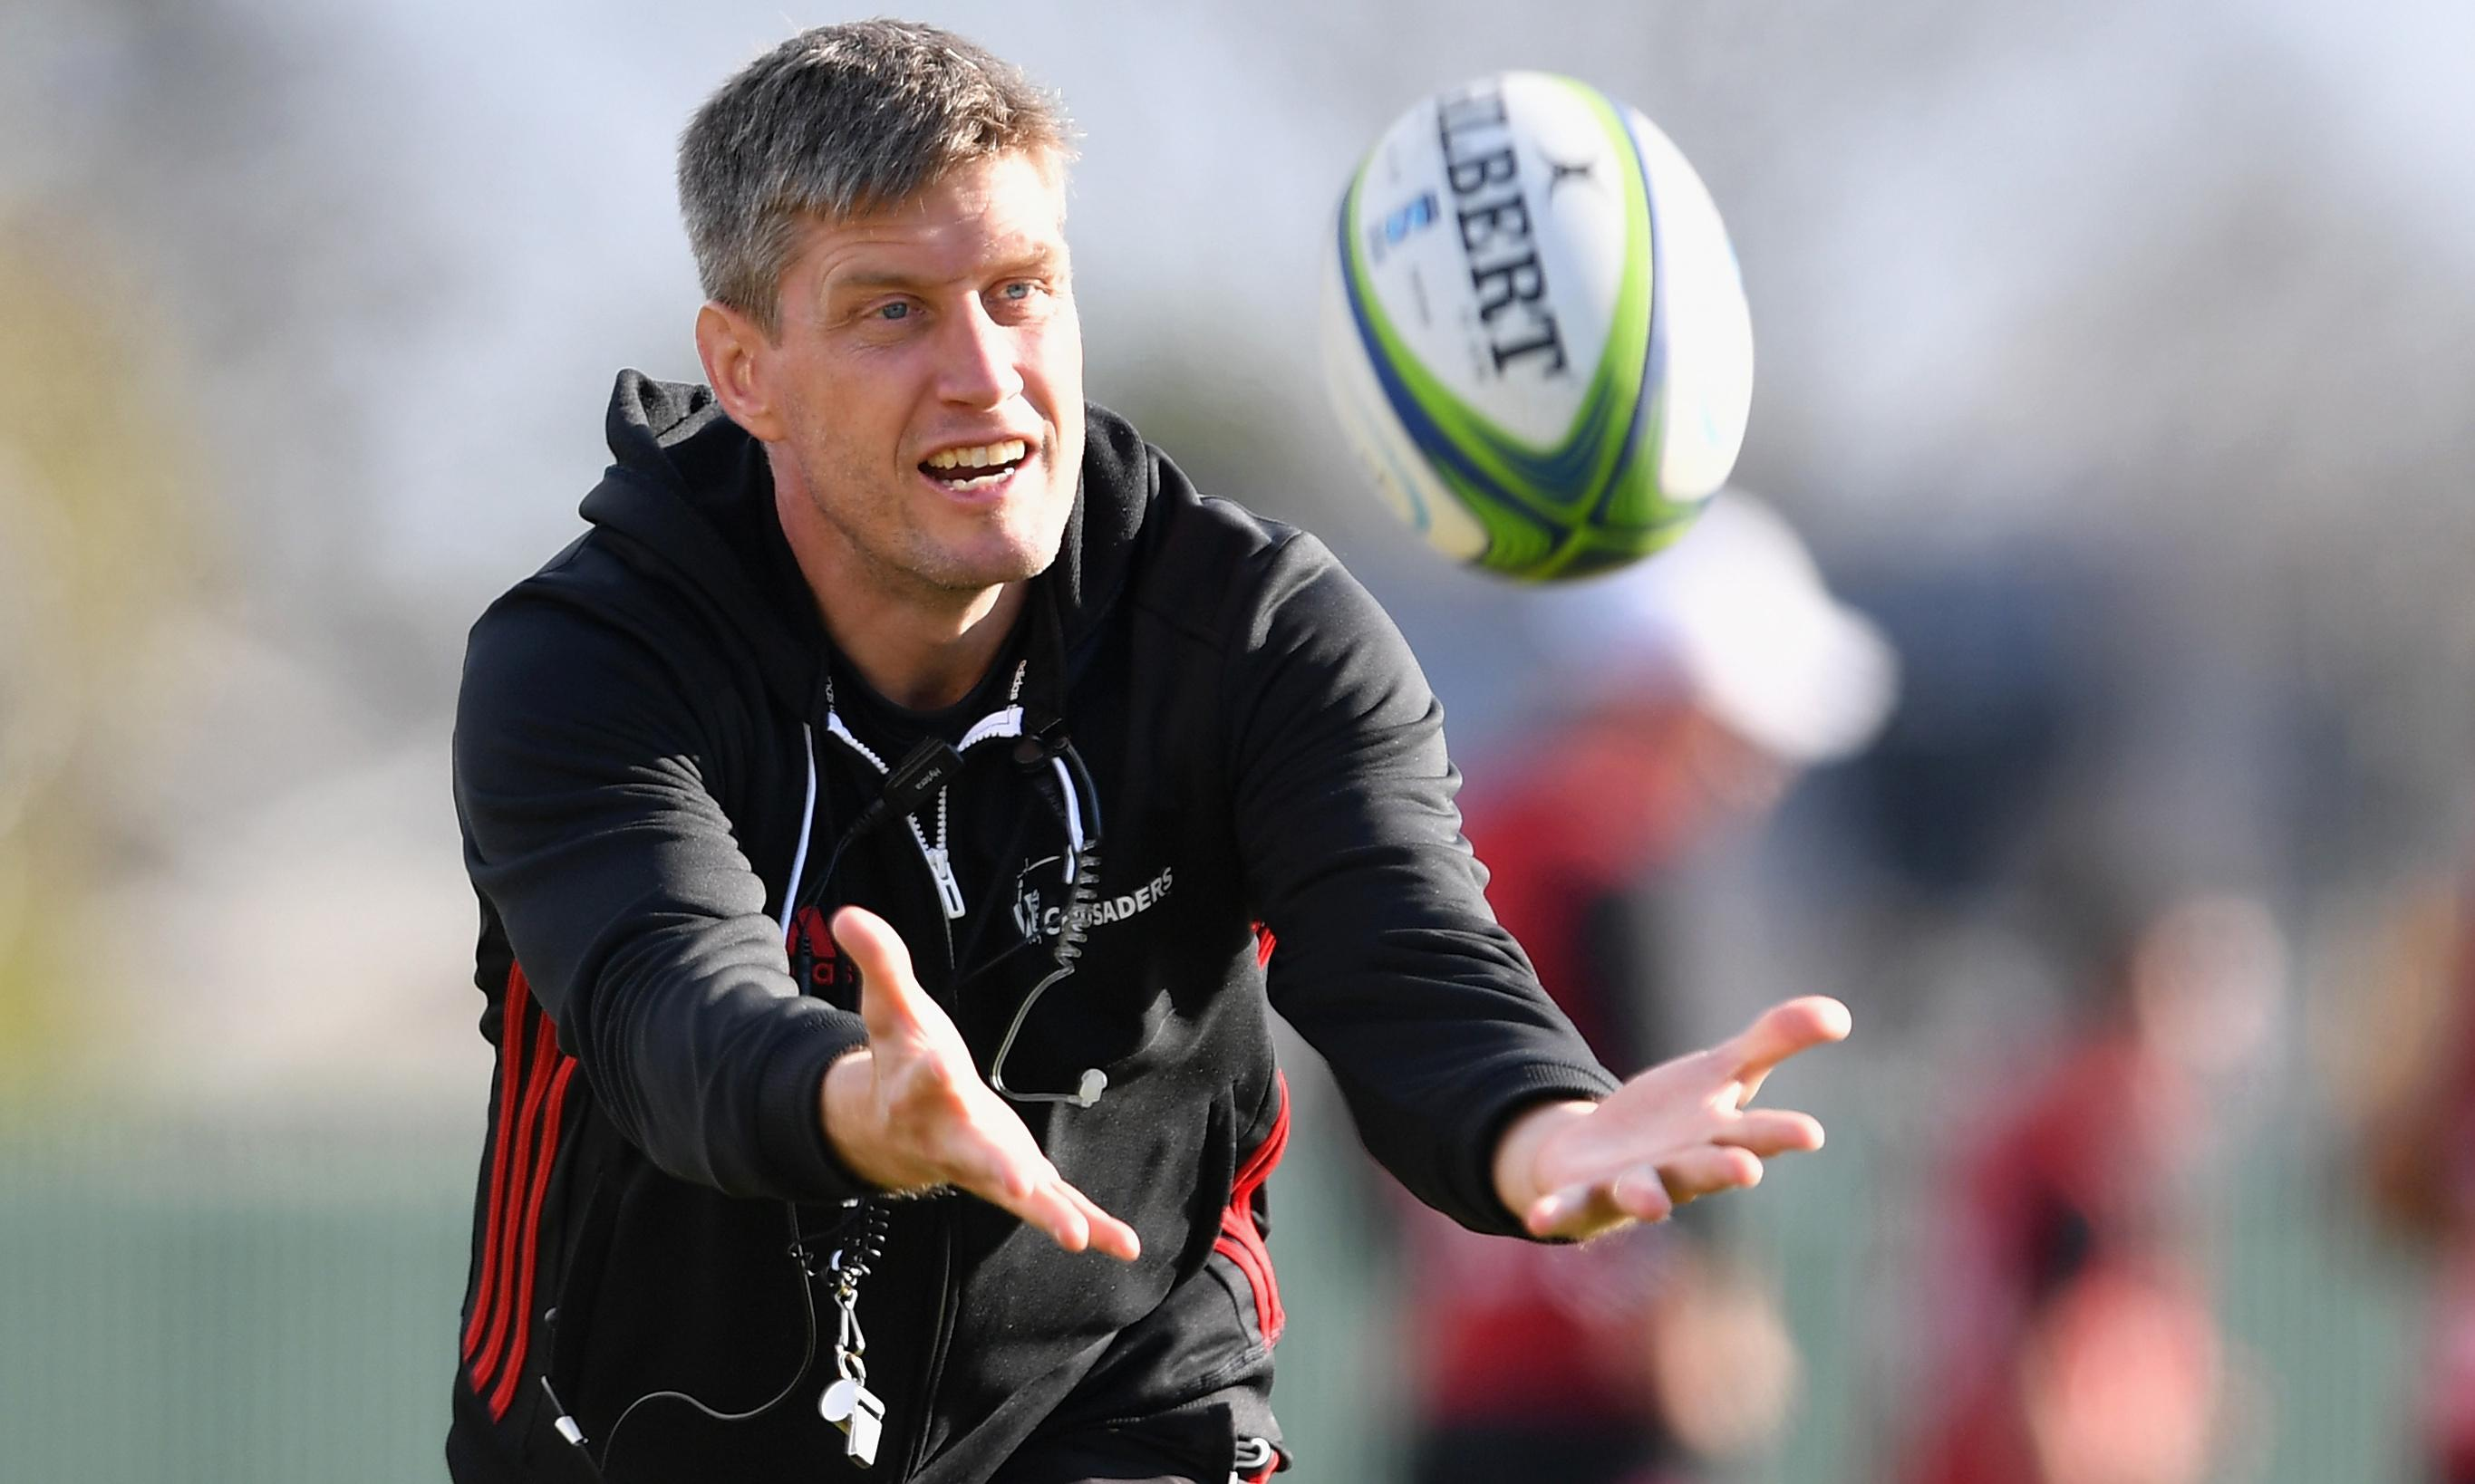 Ronan O'Gara: 'There's no secret to the All Blacks but no one believes that'